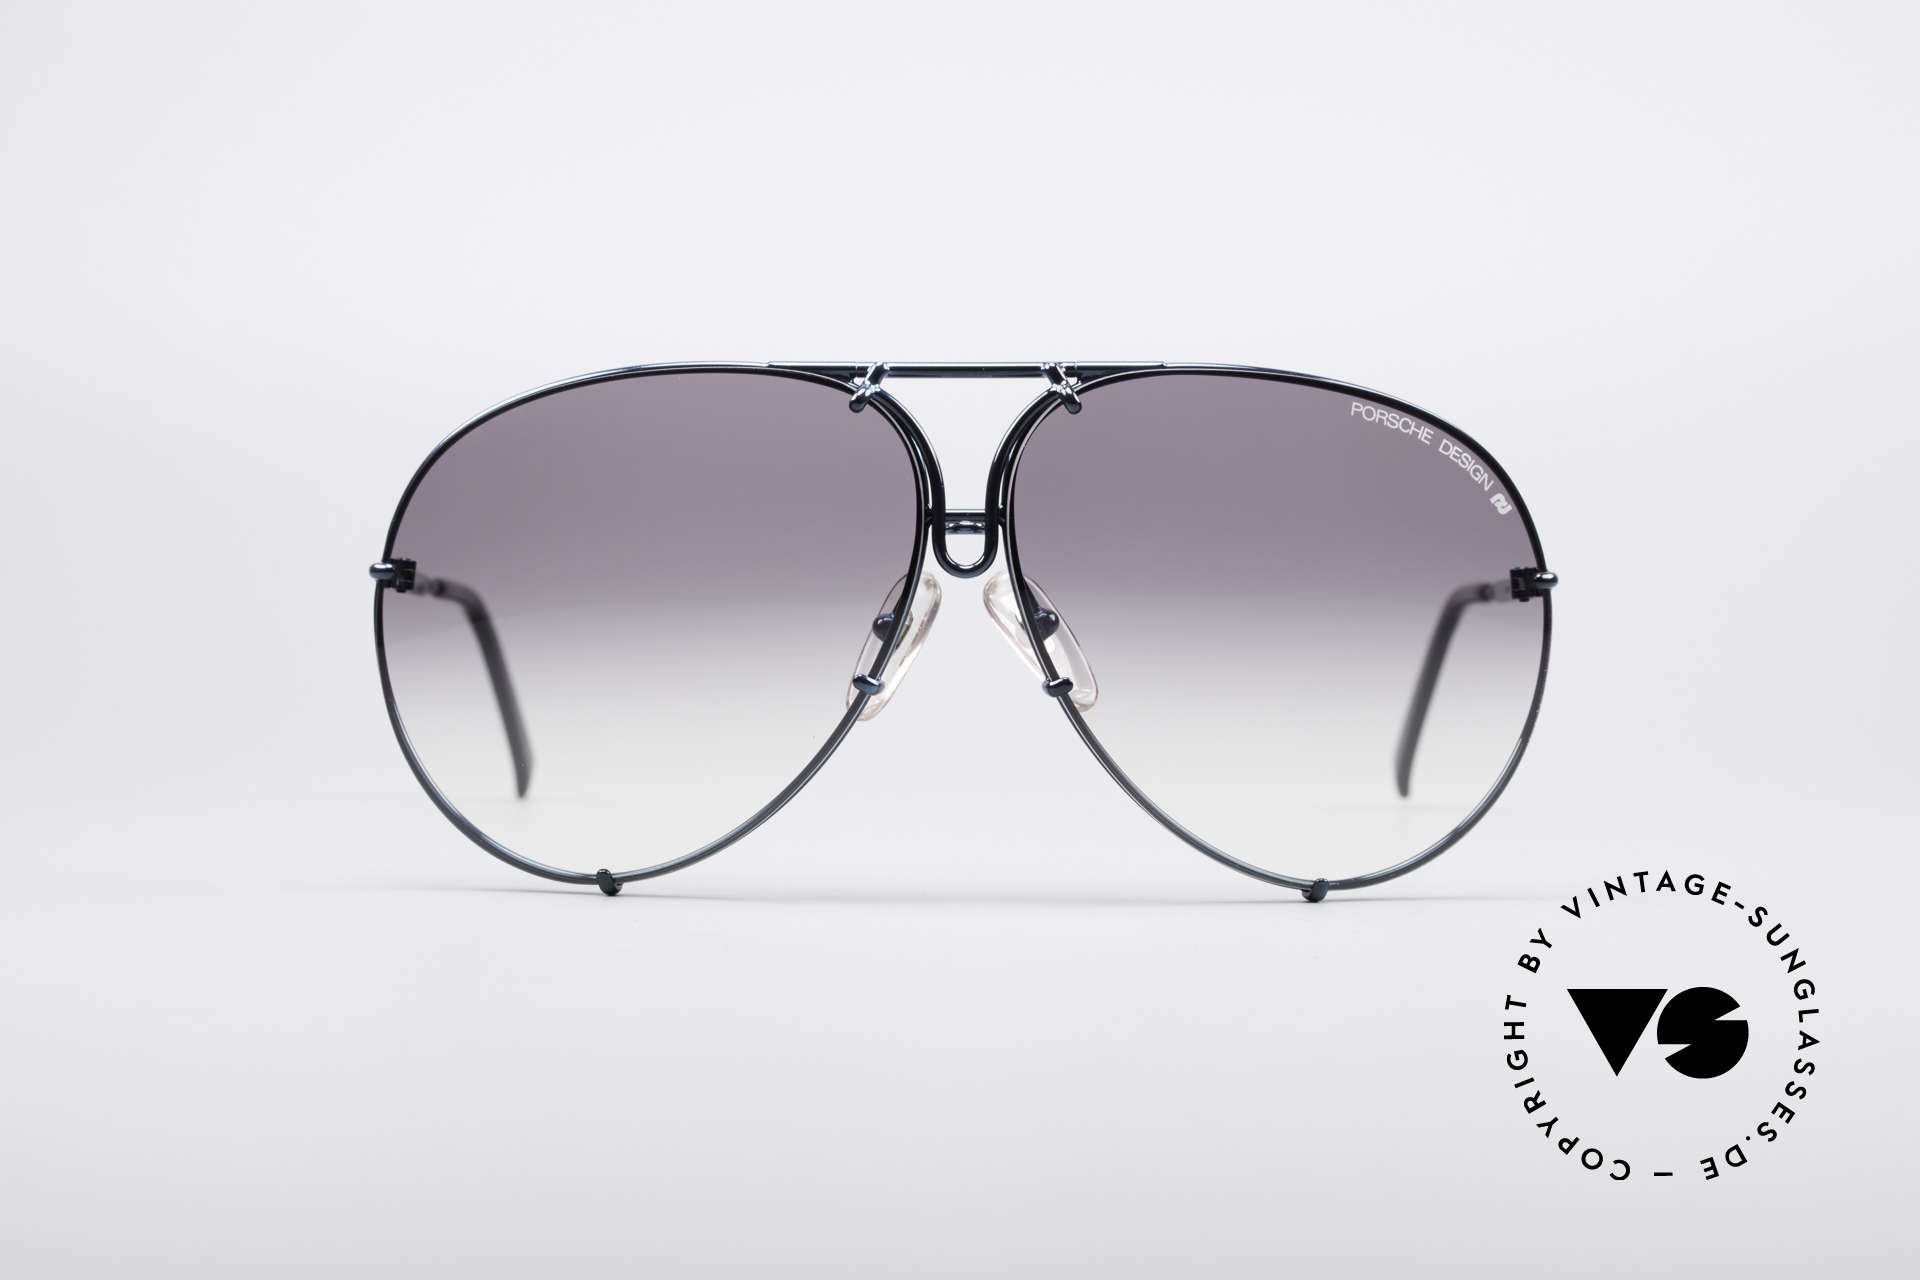 Porsche 5623 80's Aviator Sunglasses, one of the most wanted vintage models, worldwide!, Made for Men and Women